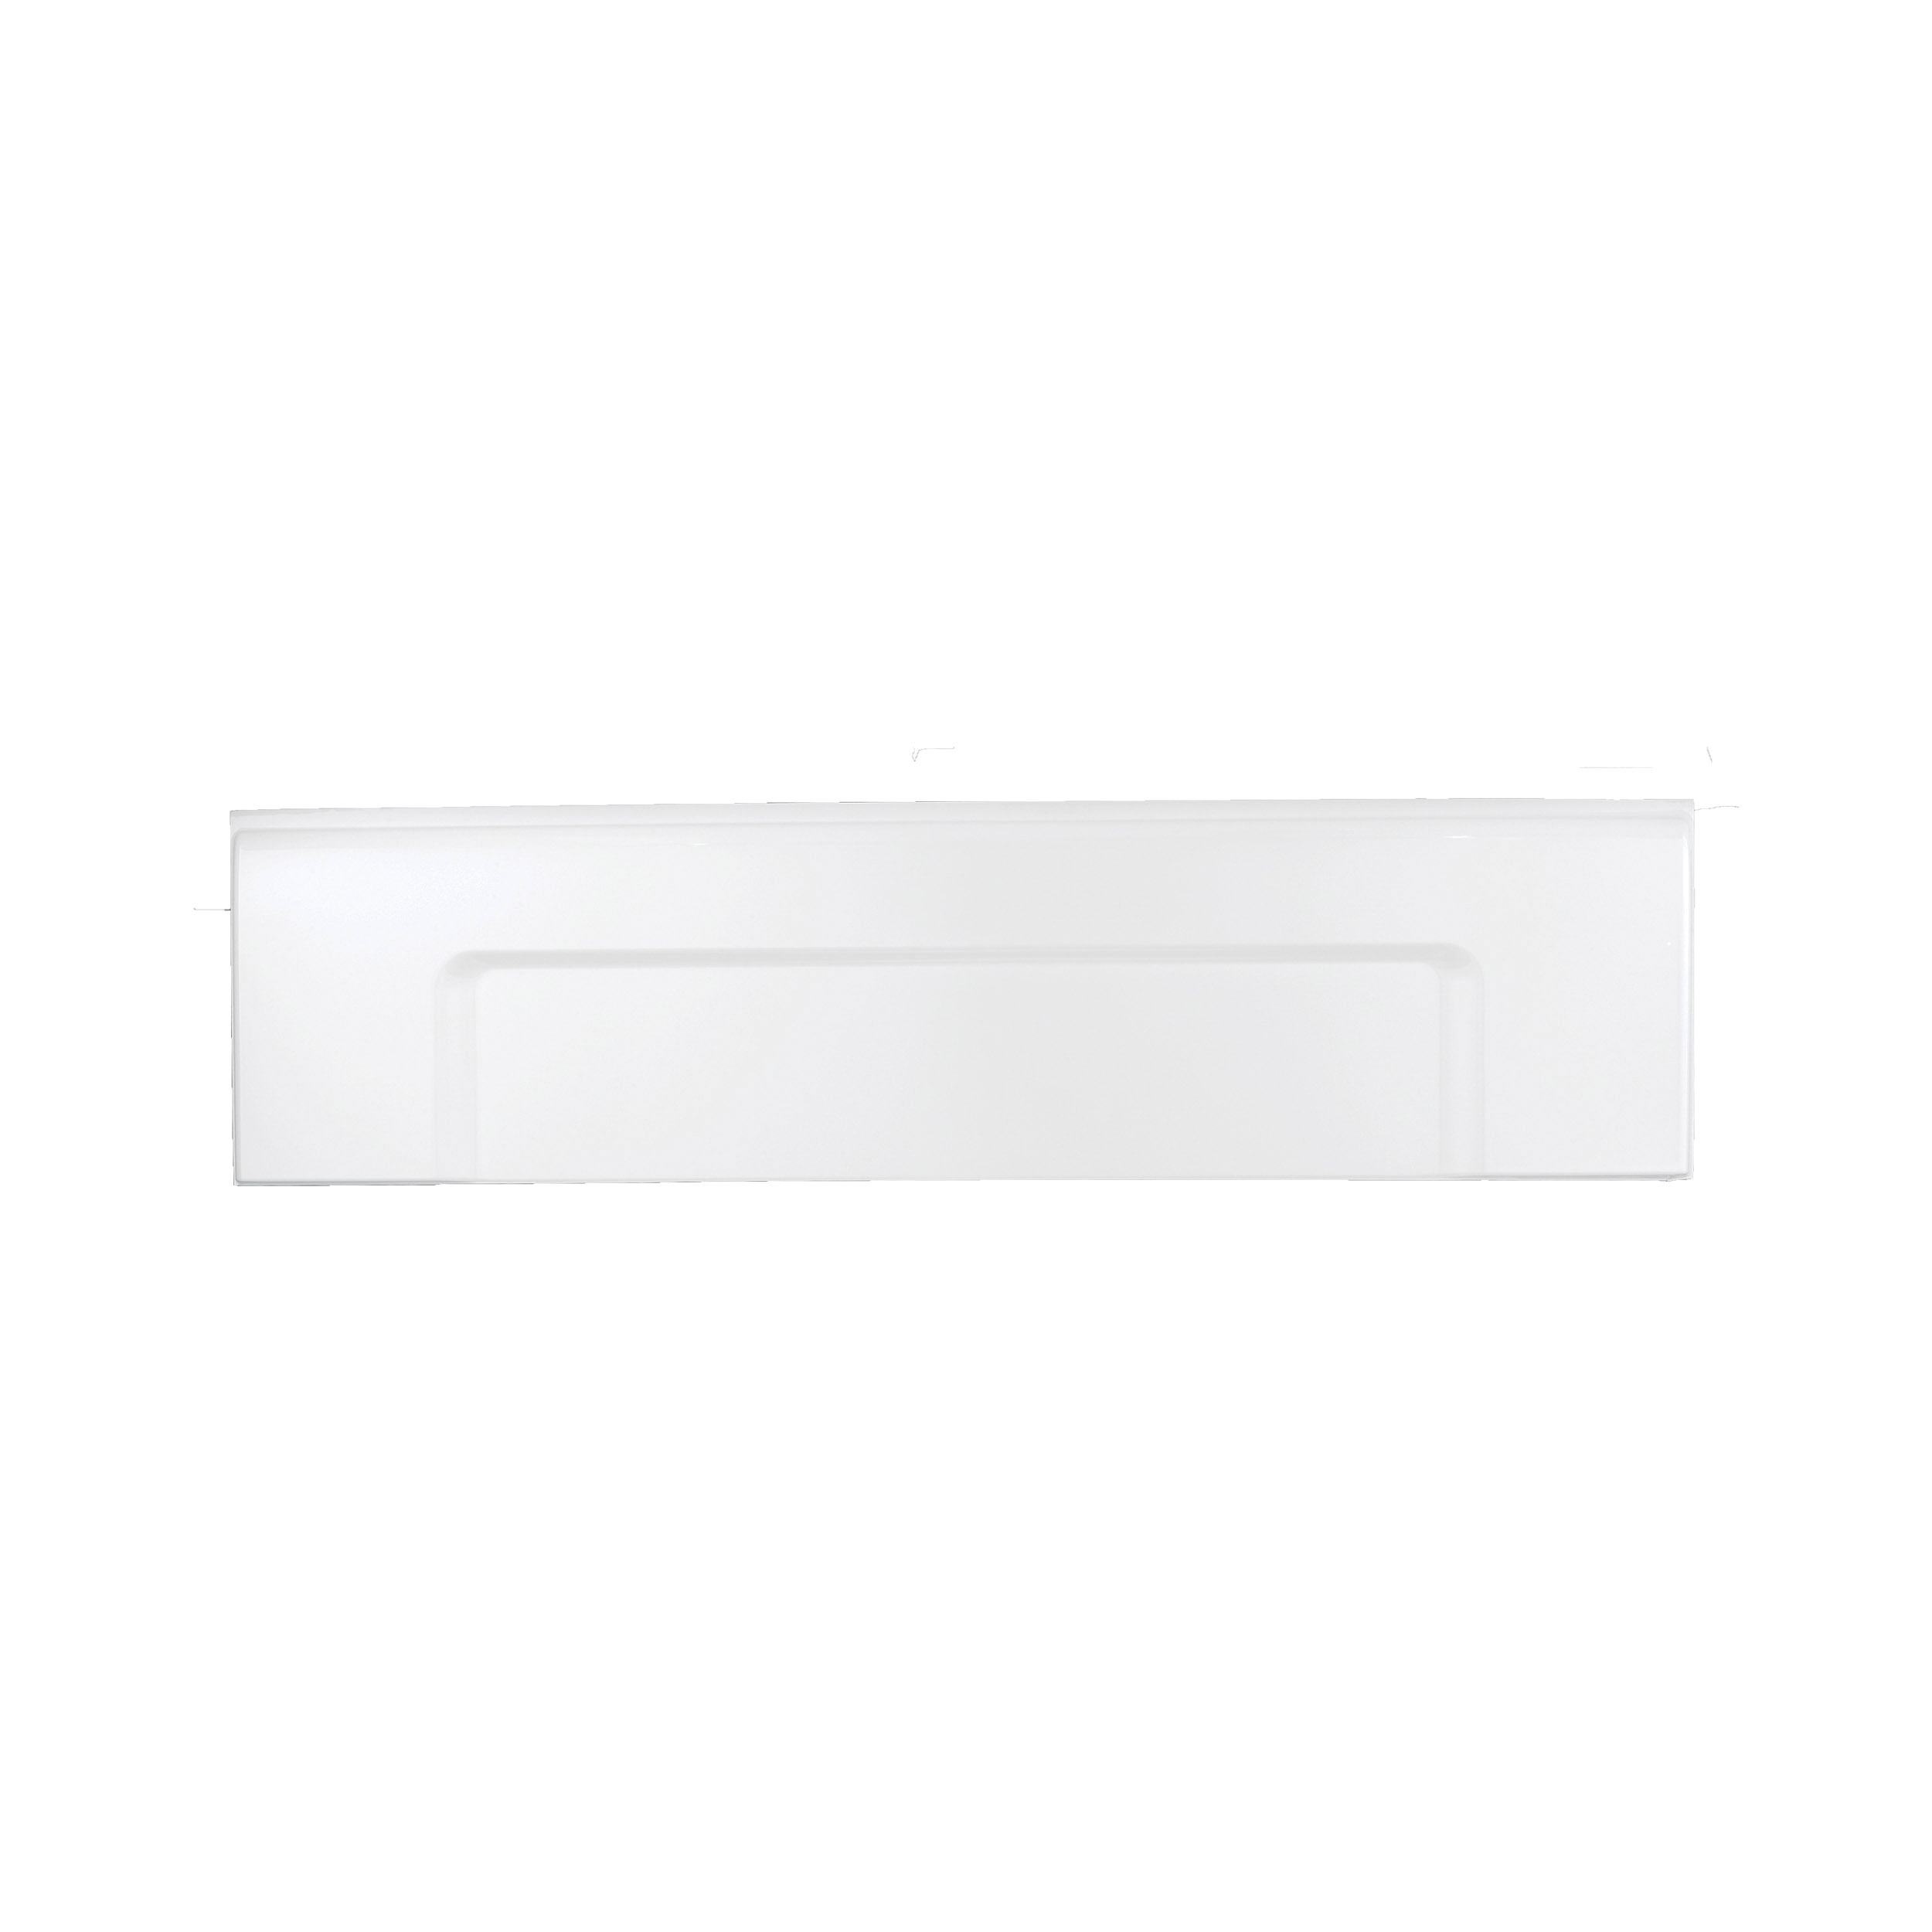 American Standard 9271019.020 Bathtub Apron, For Use With Evolution® 6 ft x 36 in Everclean® Combo Massage System, Acrylic, White, Import